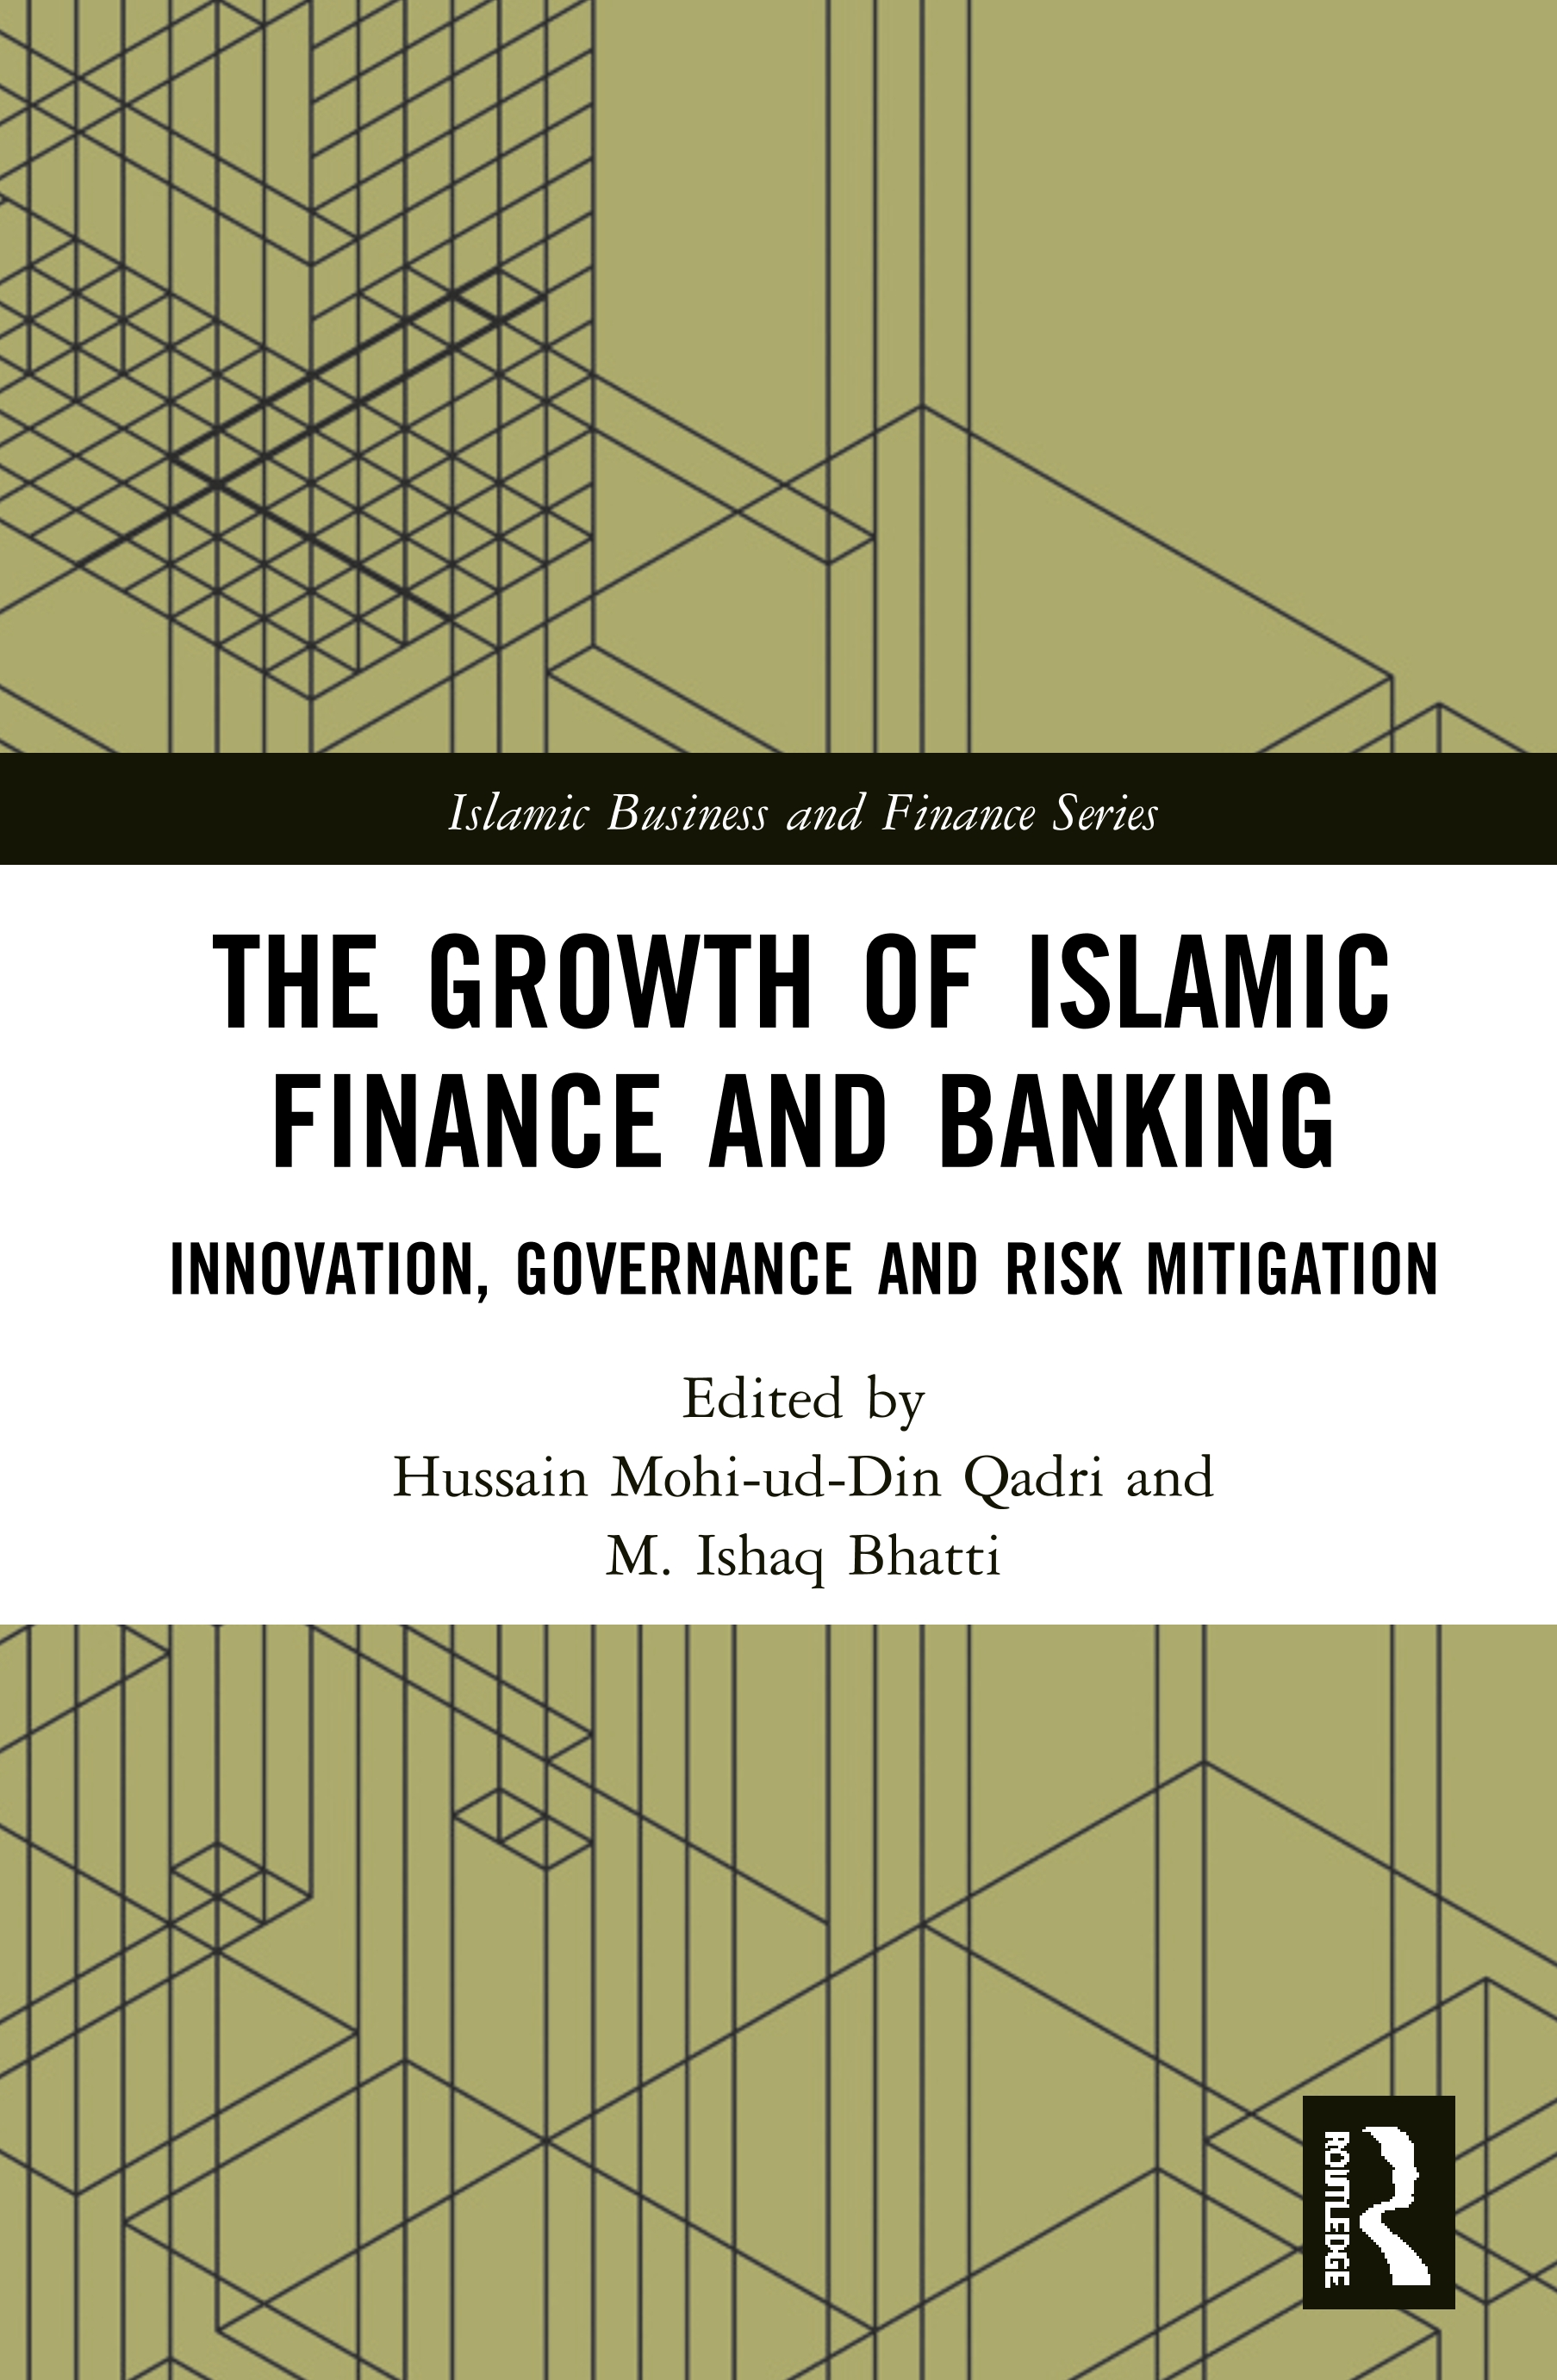 The Growth of Islamic Finance and Banking: Innovation, Governance and Risk Mitigation book cover